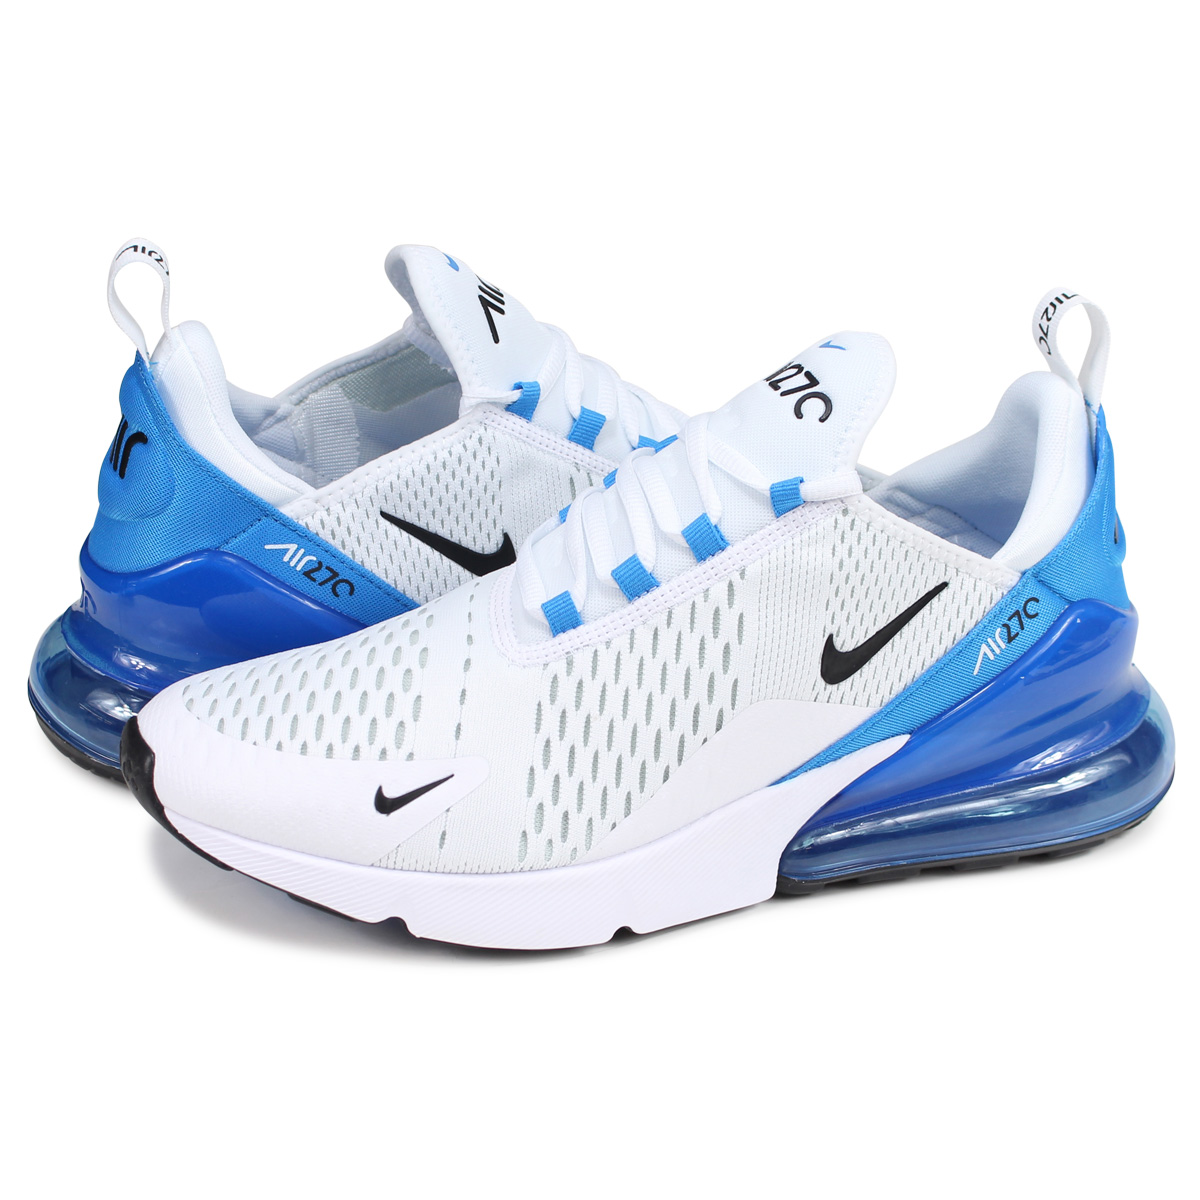 Nike NIKE Air Max 270 sneakers men AIR MAX 270 white white AH8050 110